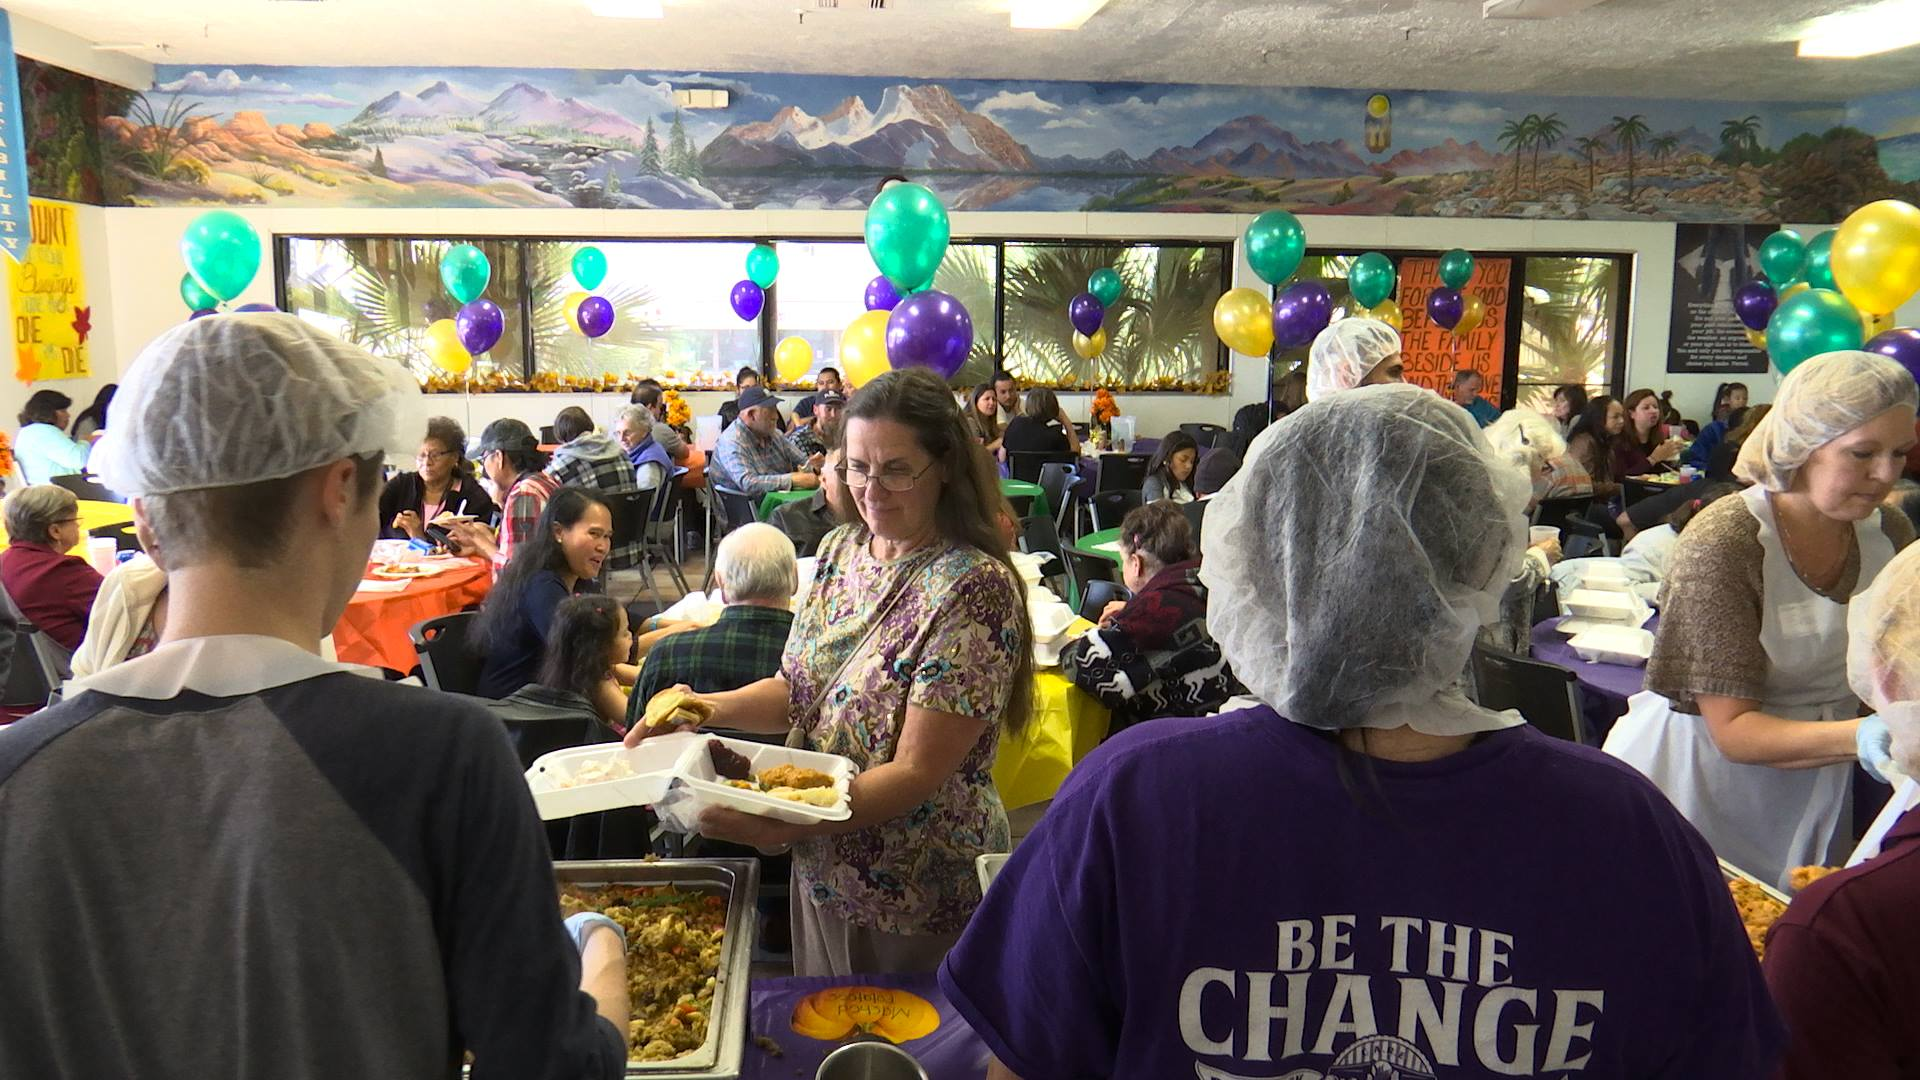 Guests are served at Red Rock Canyon School's annual community Thanksgiving dinner, St. George, Utah, Nov. 24, 2016 | Photo by Sheldon Demke, St. George News